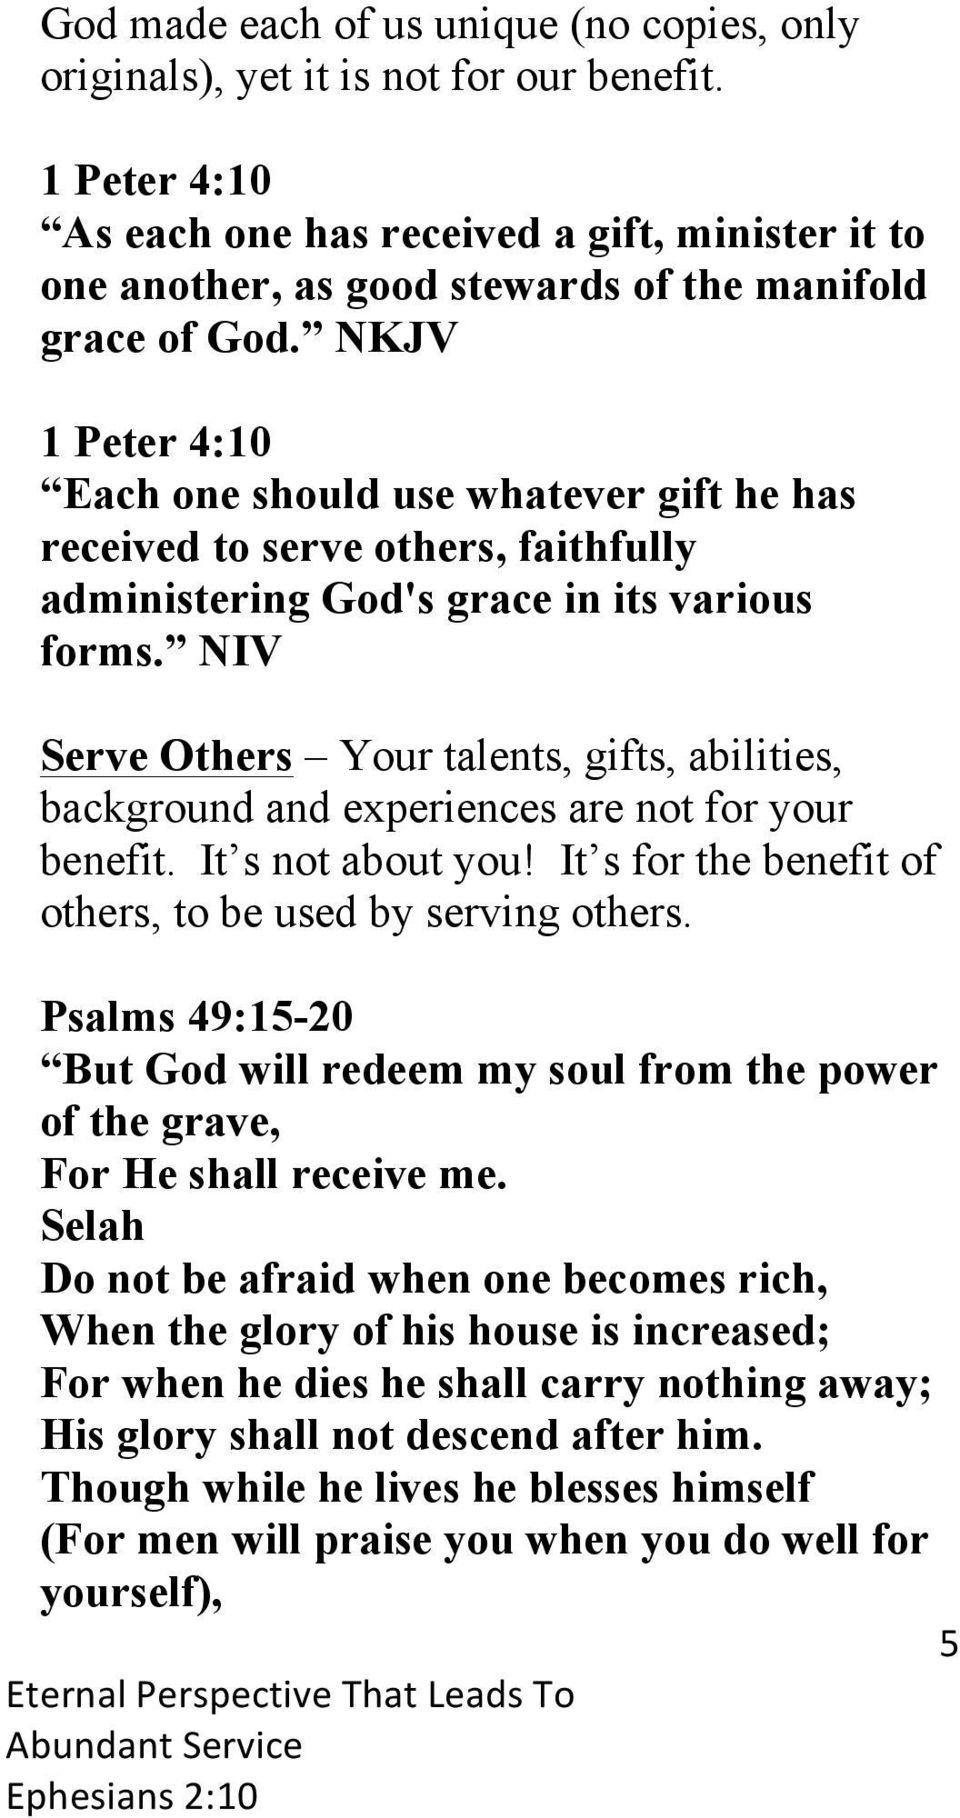 NKJV 1 Peter 4:10 Each one should use whatever gift he has received to serve others, faithfully administering God's grace in its various forms.